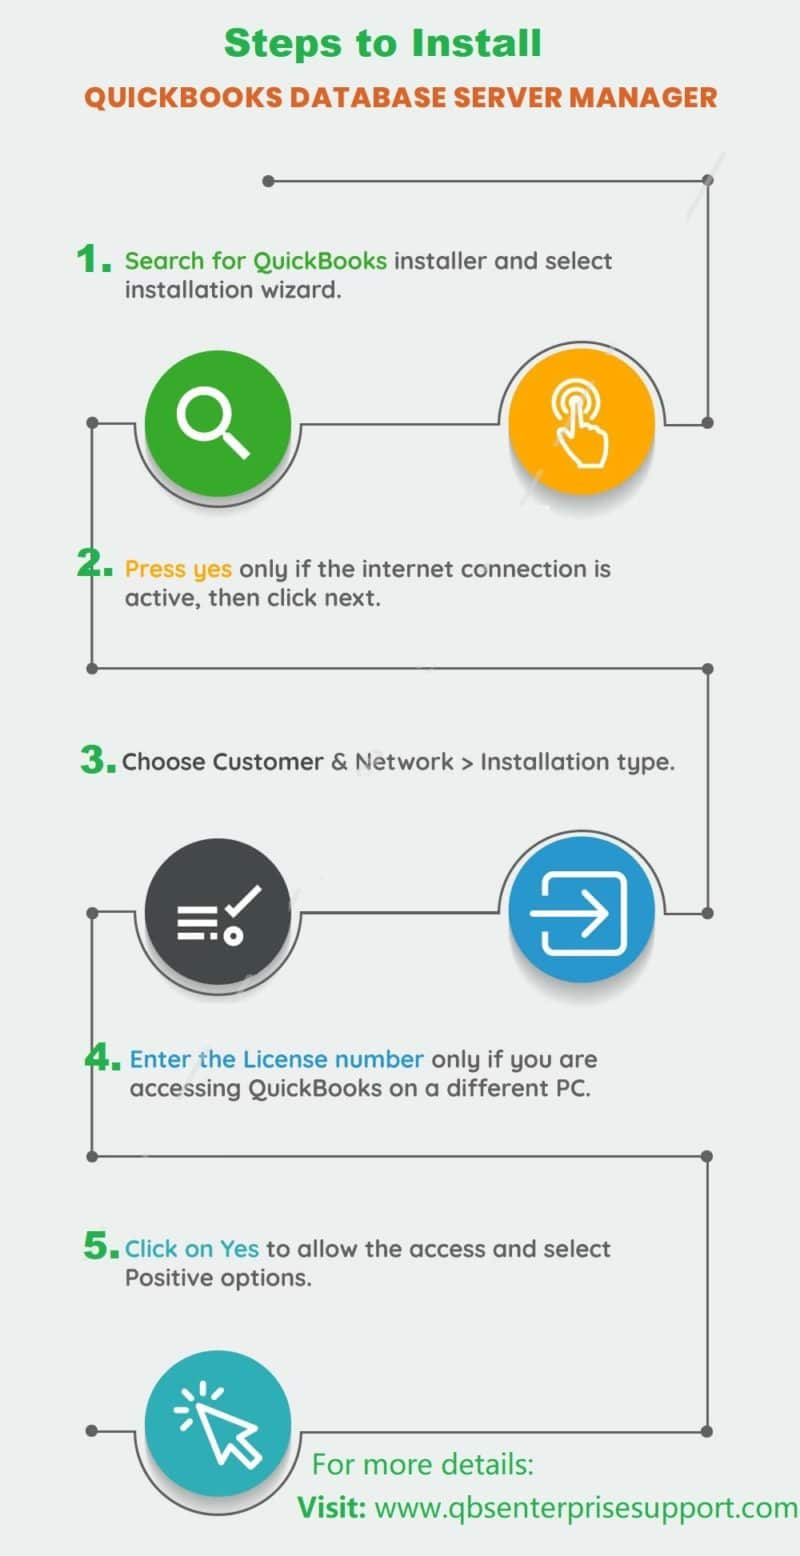 Installation of QuickBooks Database Server Manger - Infographic Image